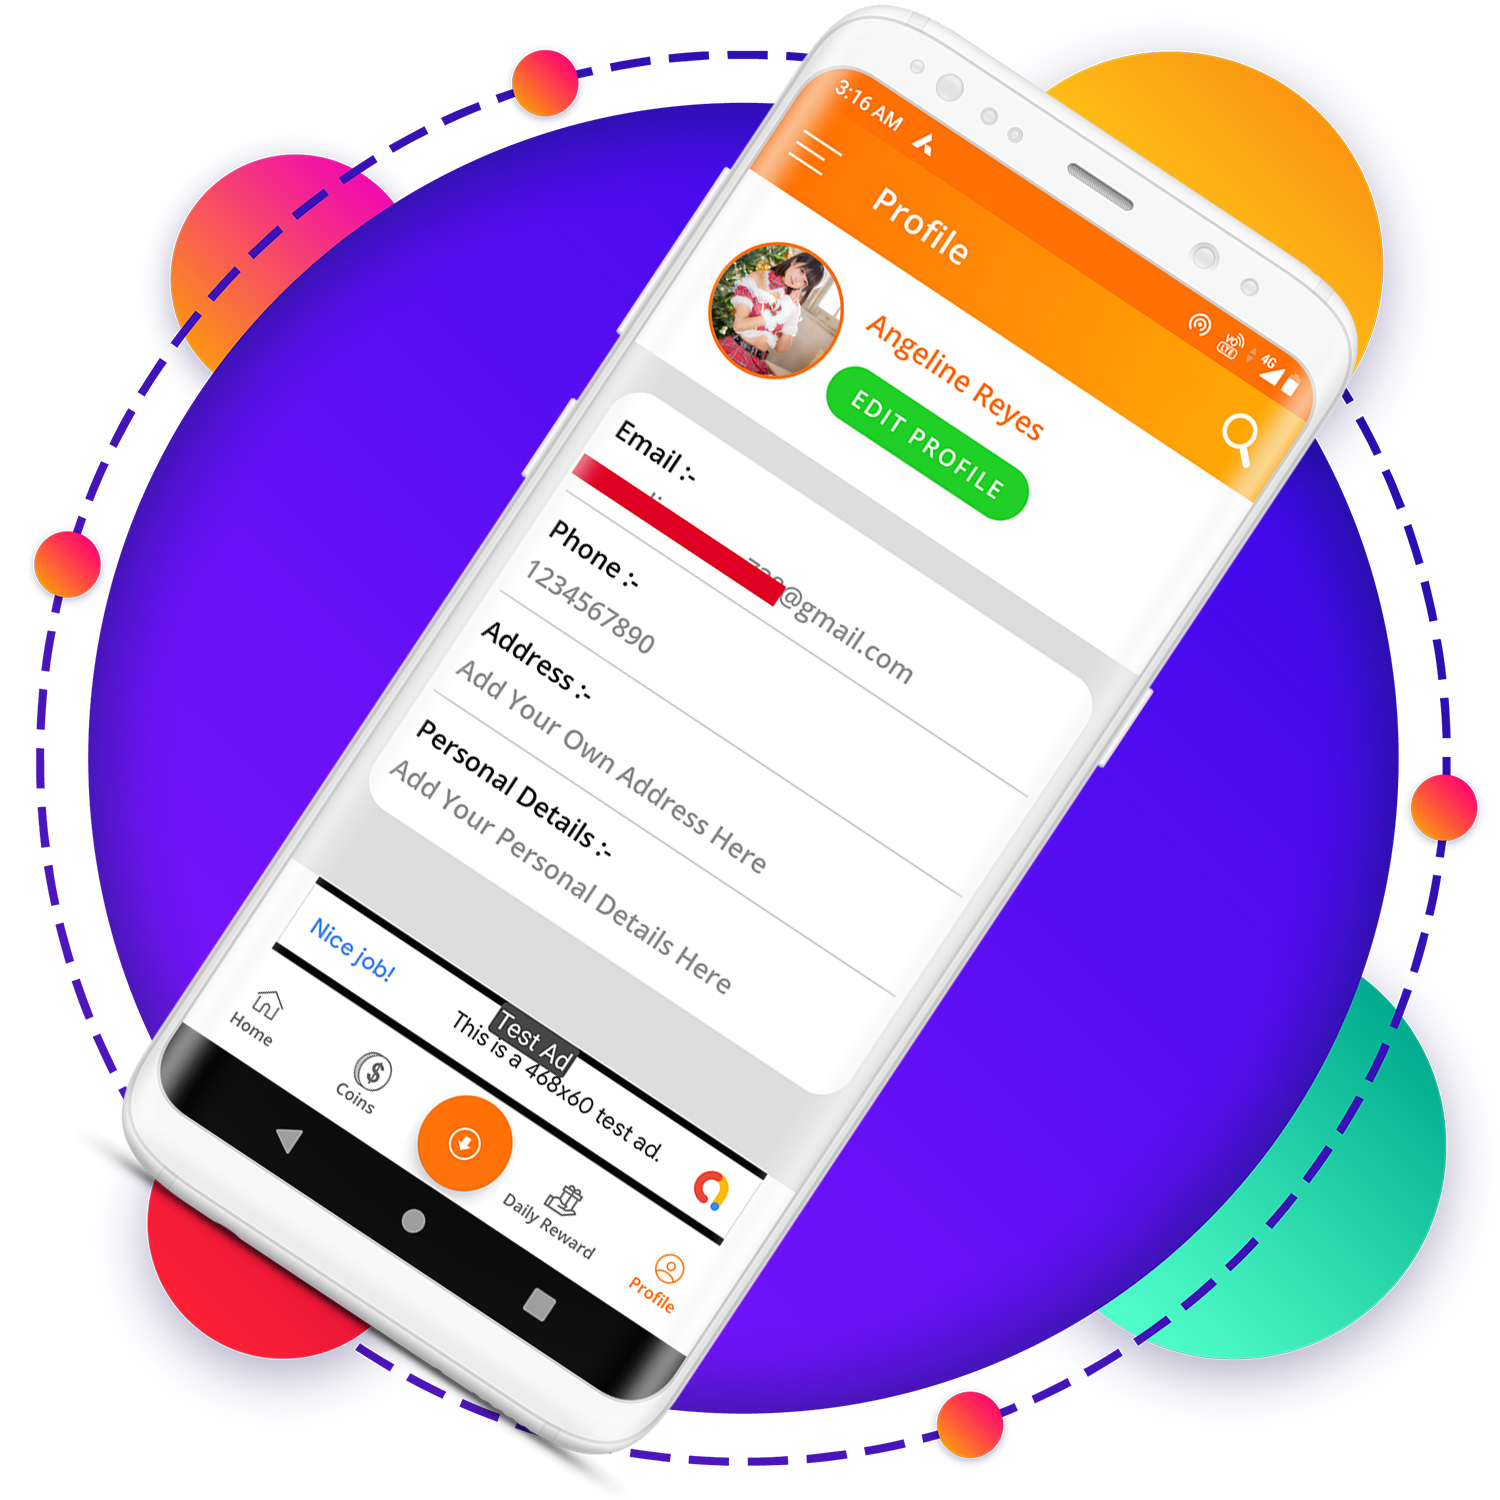 QuickCash All In One Money Earning Android App + Games + WhatsApp Tools + Earning System Admin Panel - 2